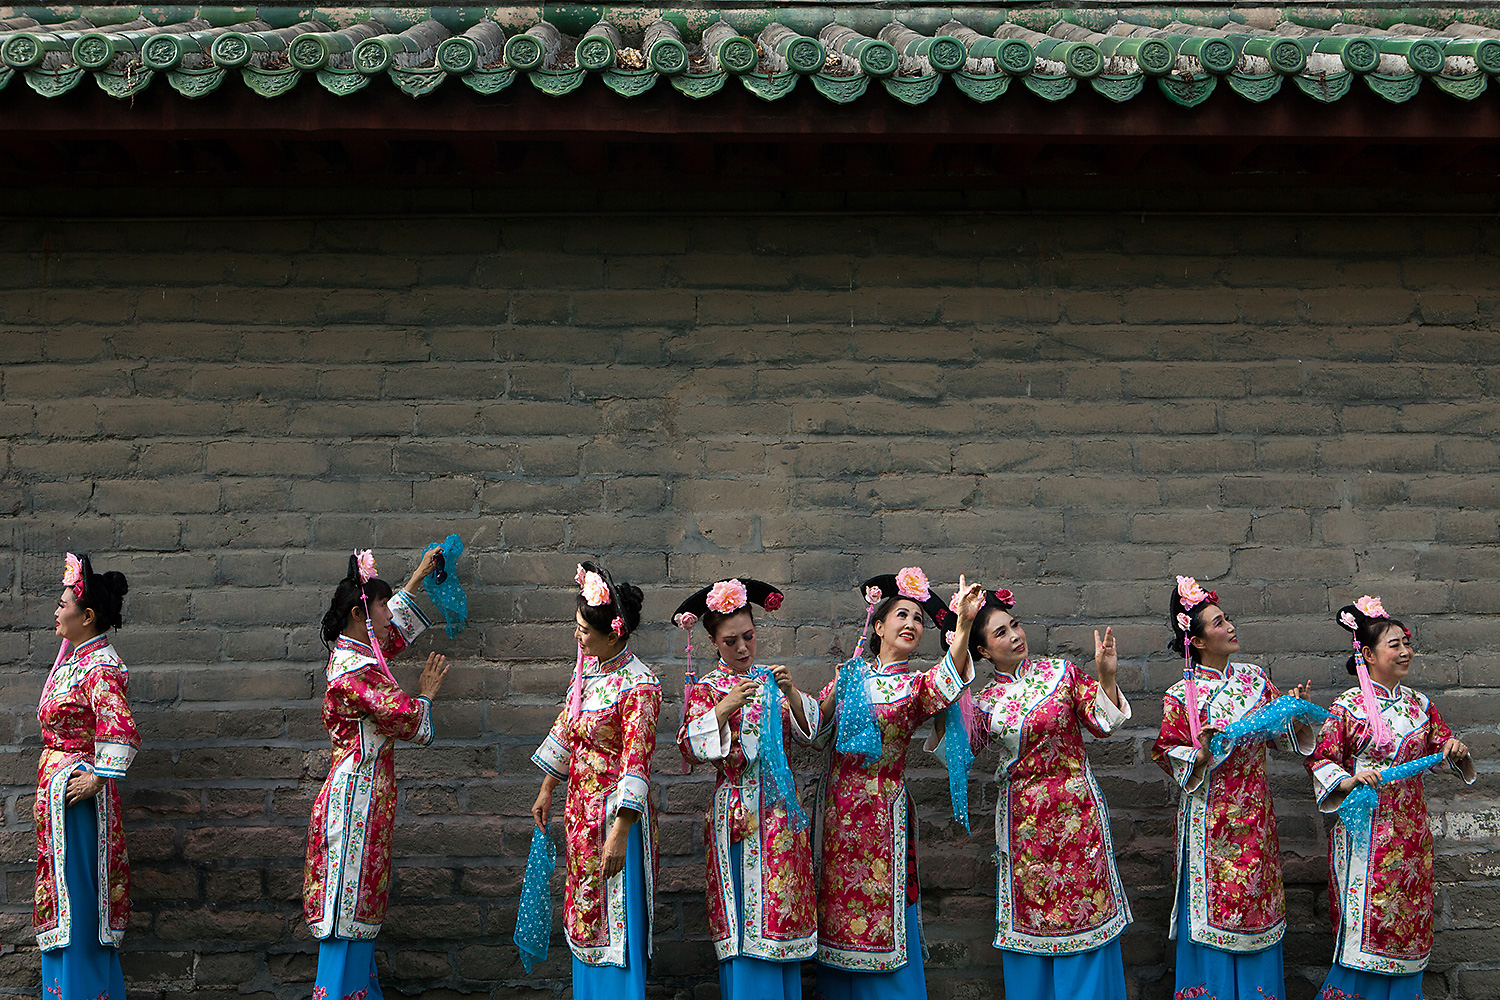 Women wearing traditional dresses stand in front of a traditional building at Ditan Park, Beijing on the summer solstice. Photo by Giulia Marchi @giuliamarchiphoto